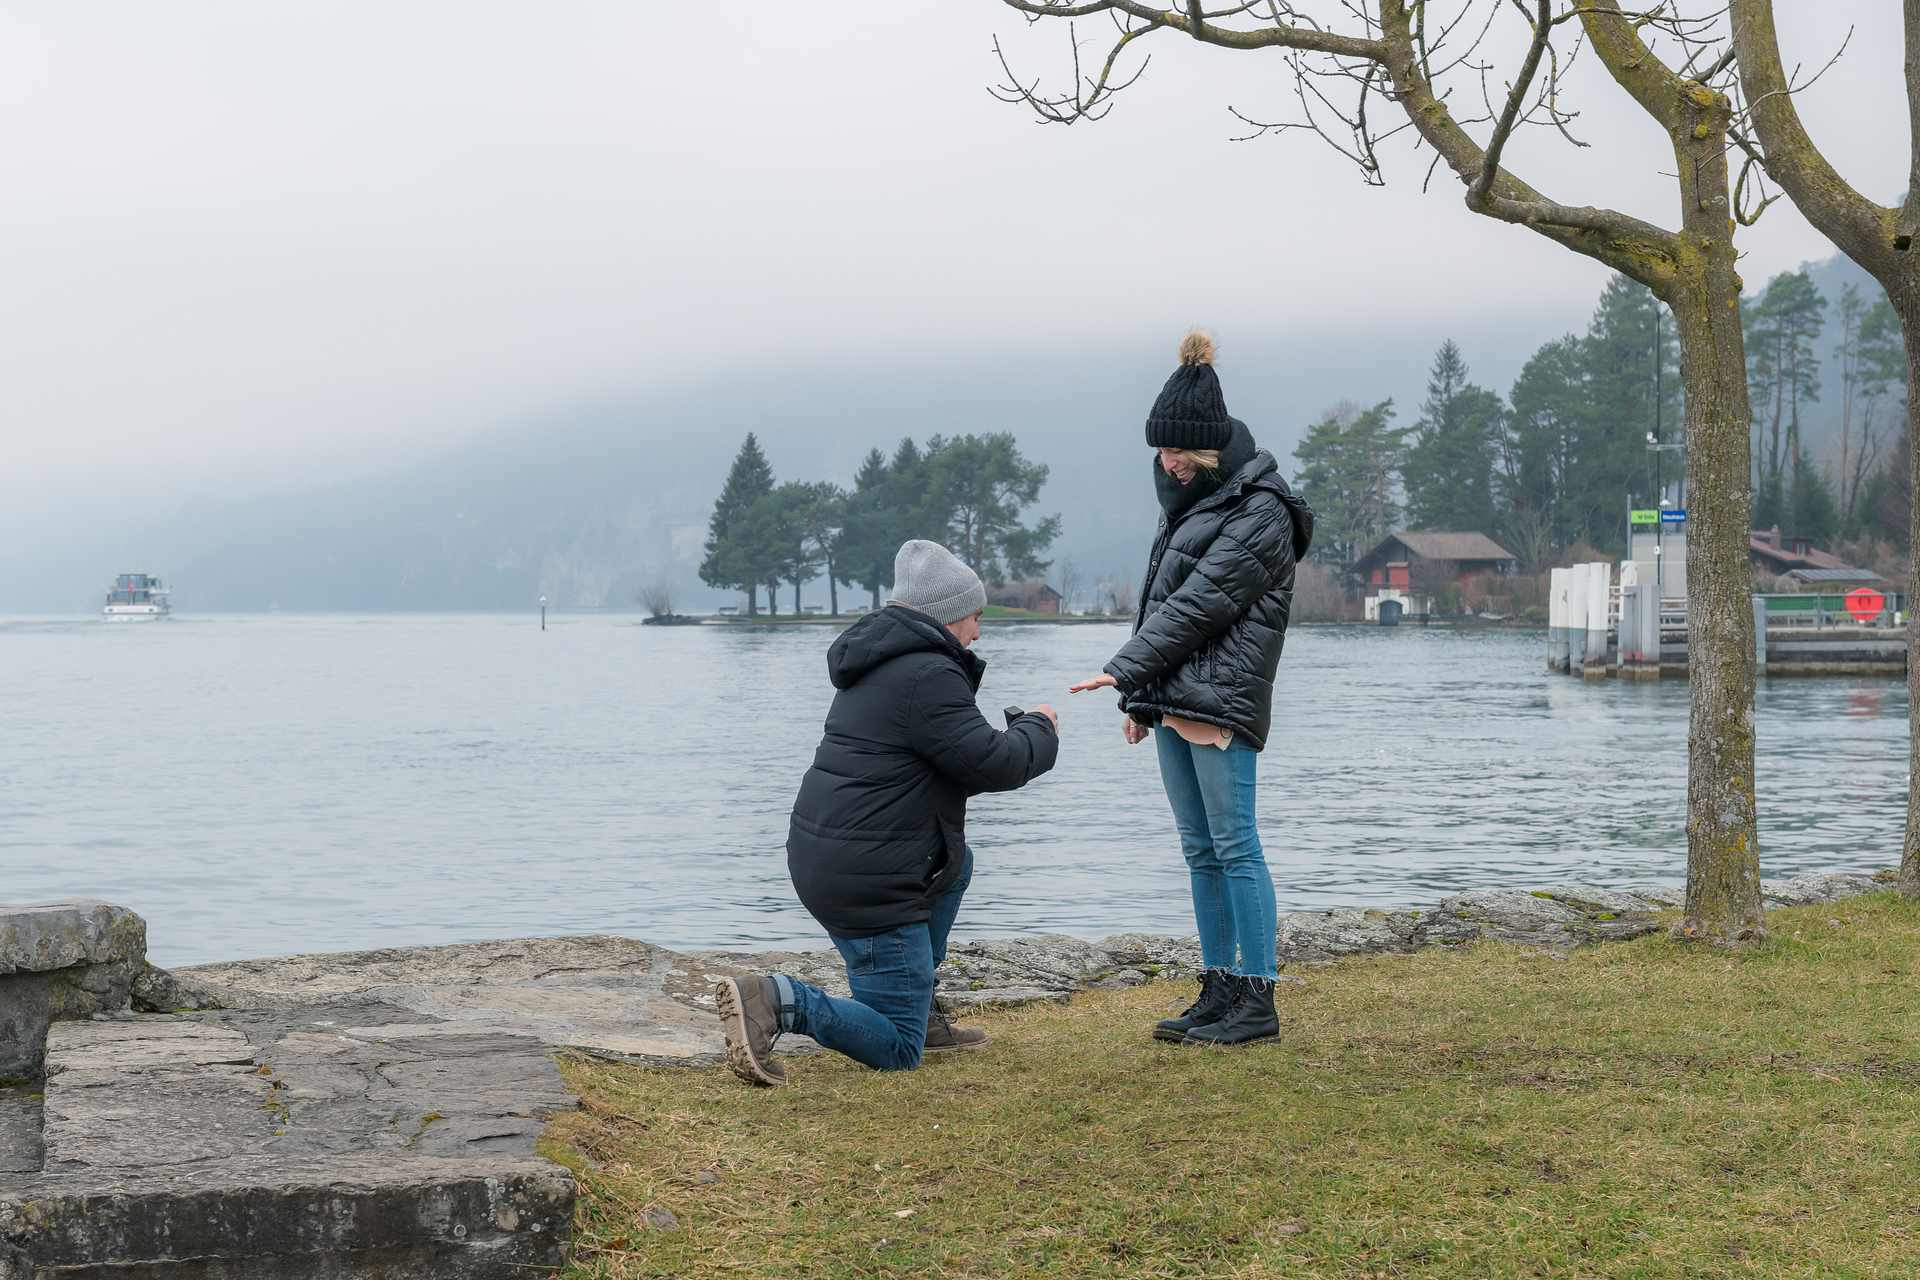 Surprise Engagement near Interlaken, Switzerland